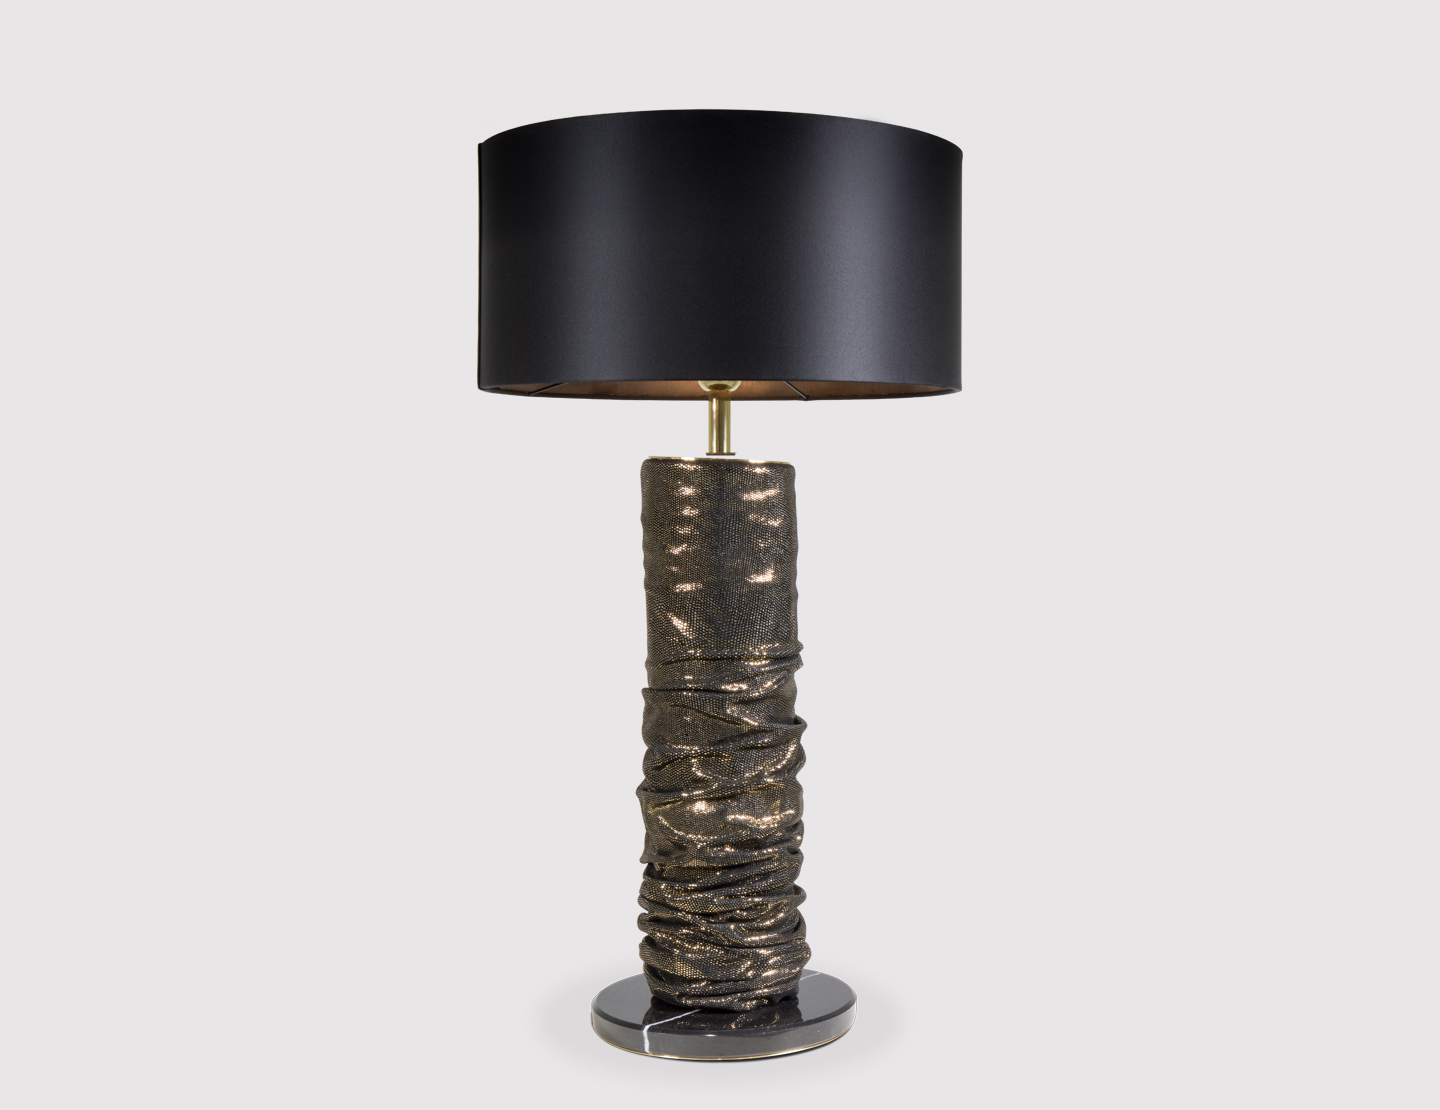 Luxury Table Lamps RuchÊ Table Lamp By Koket